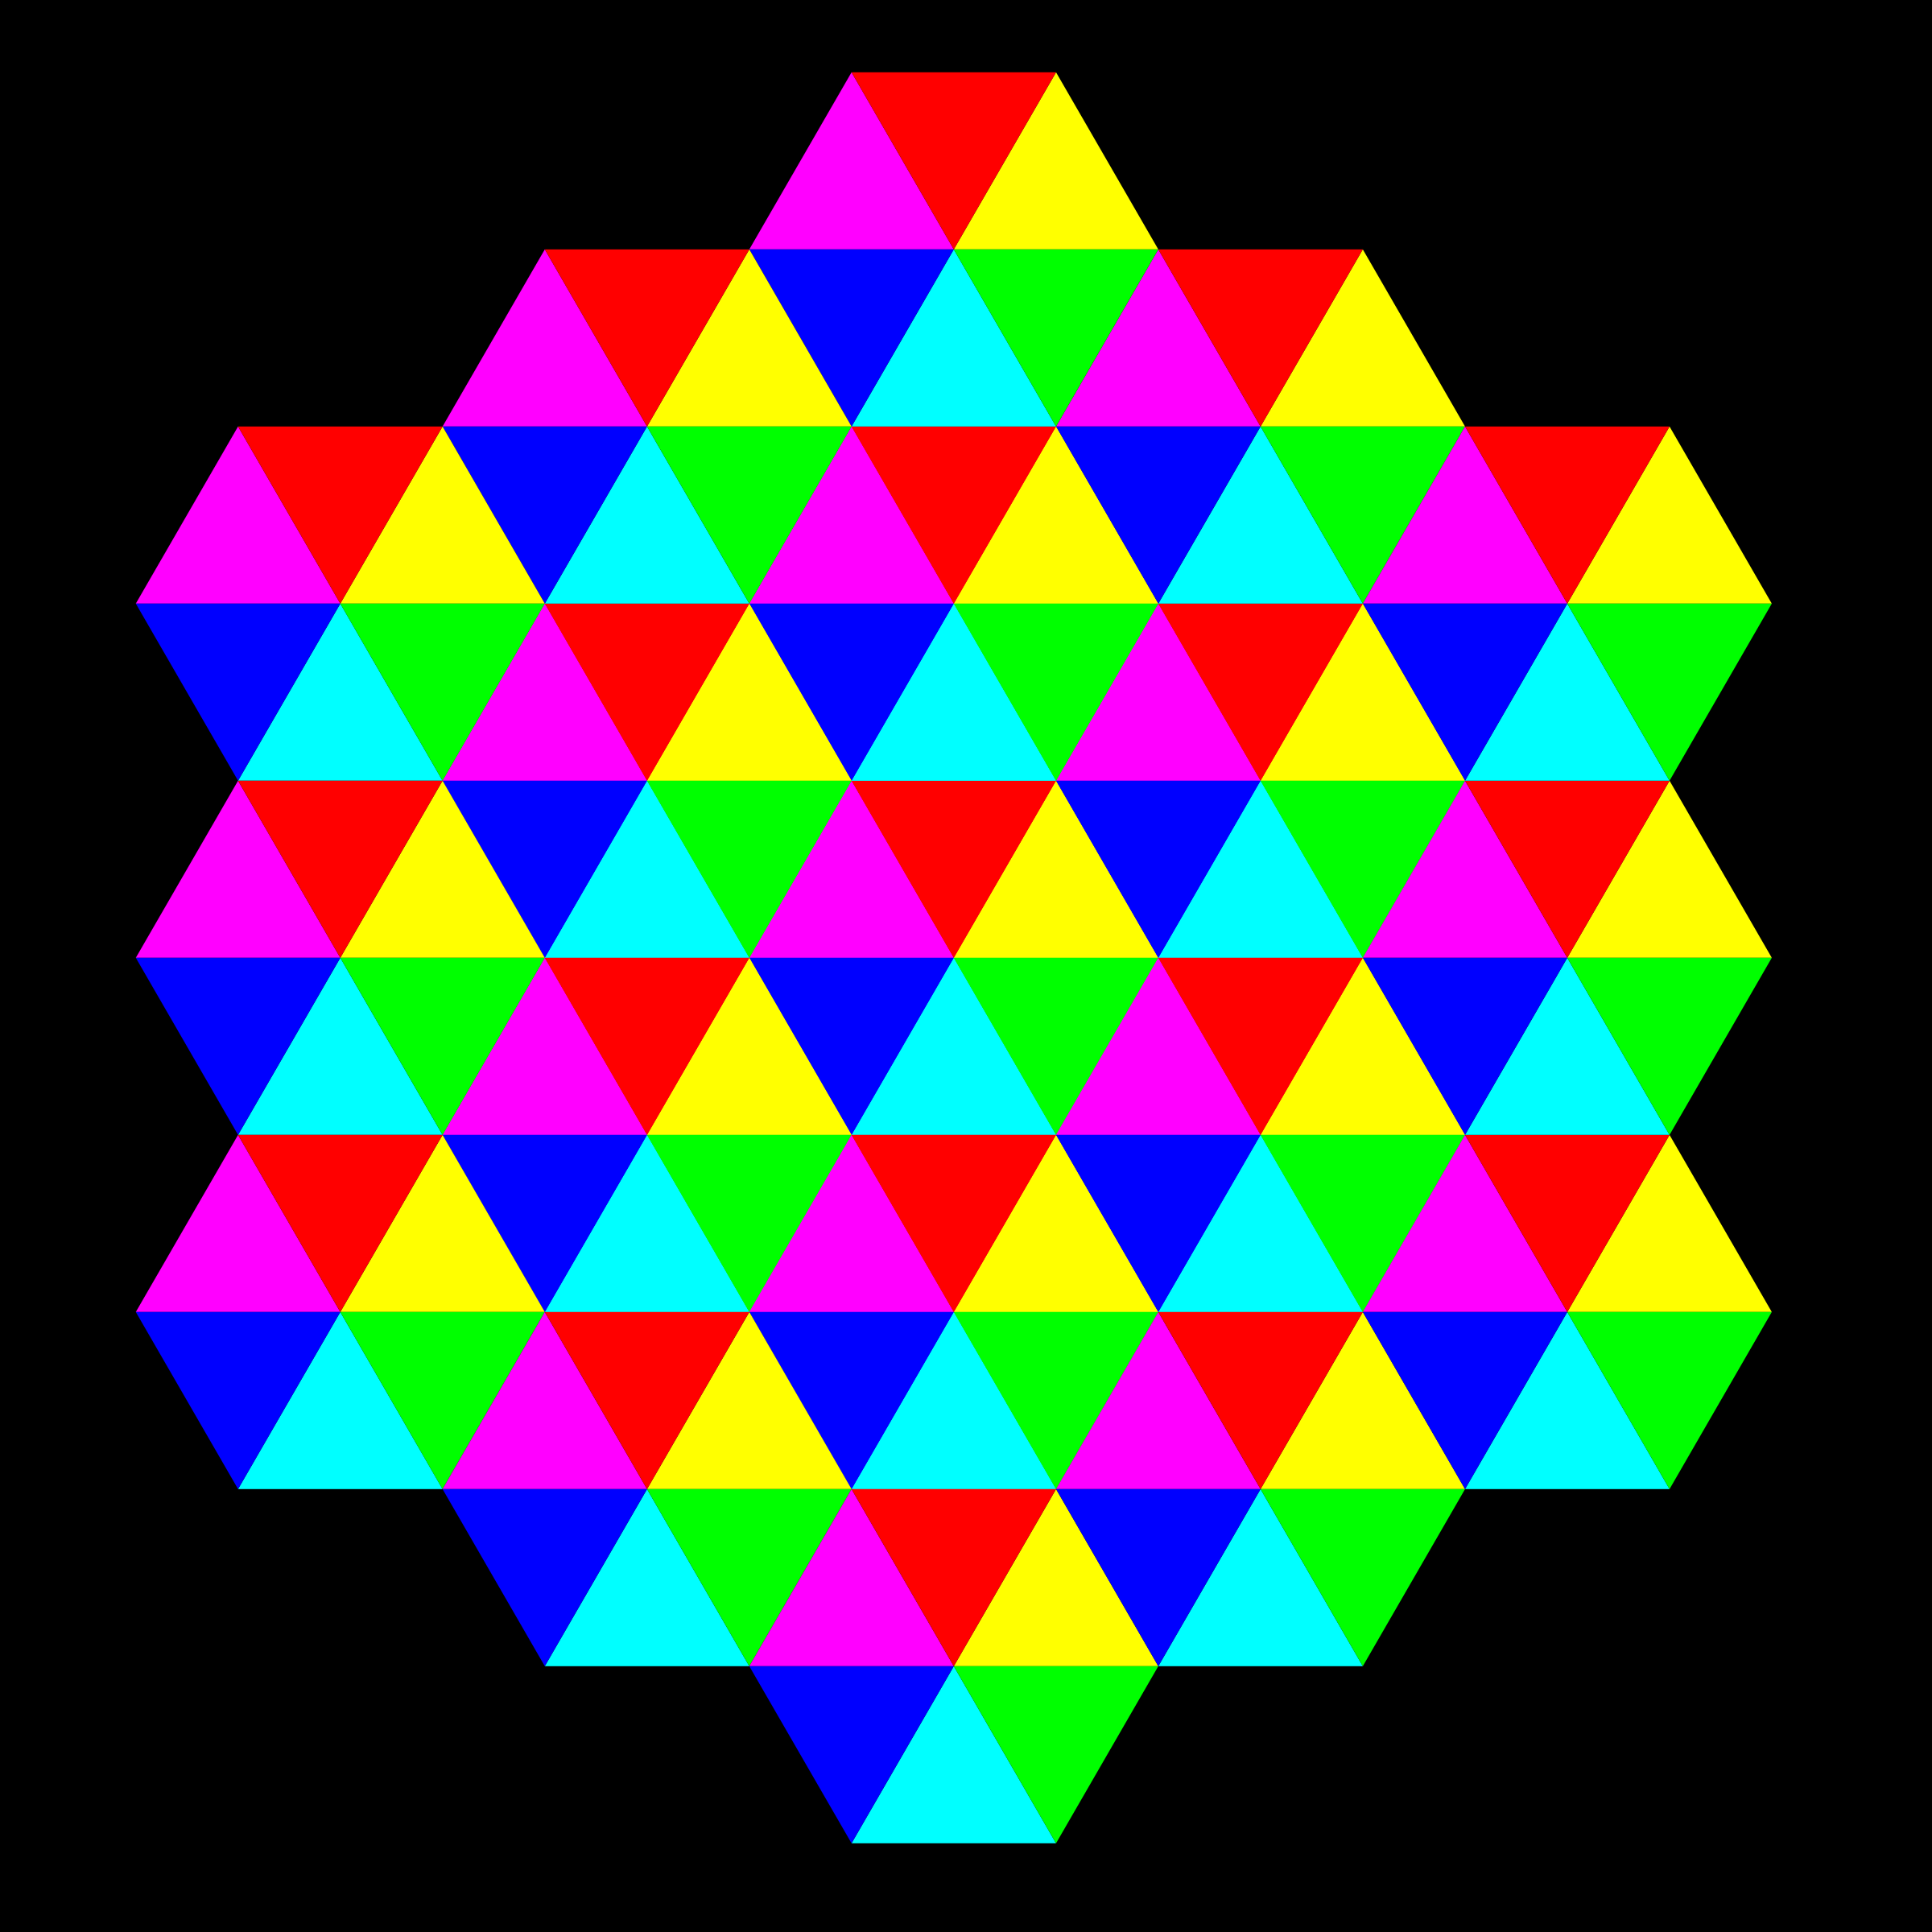 Triangle Tessellation 6 Color By 10binary Tesselations